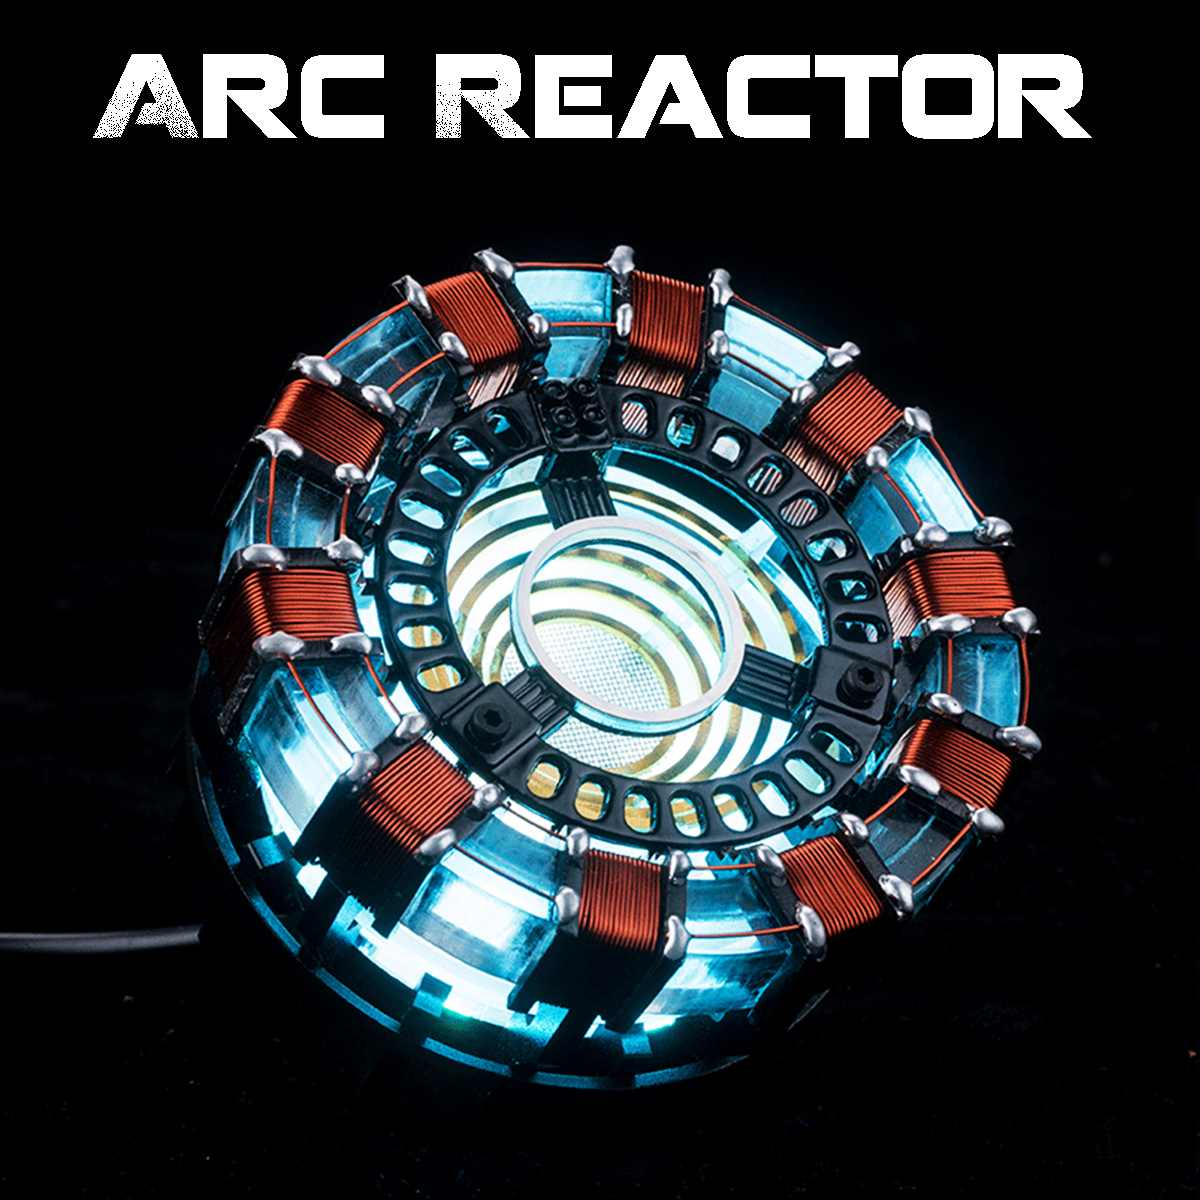 Free Fast Shipping 1:1 Scale Arc Reactor Need To Assemble Reactor Diameter Of 8cm With LED Light Action With English Manual MK1(China)